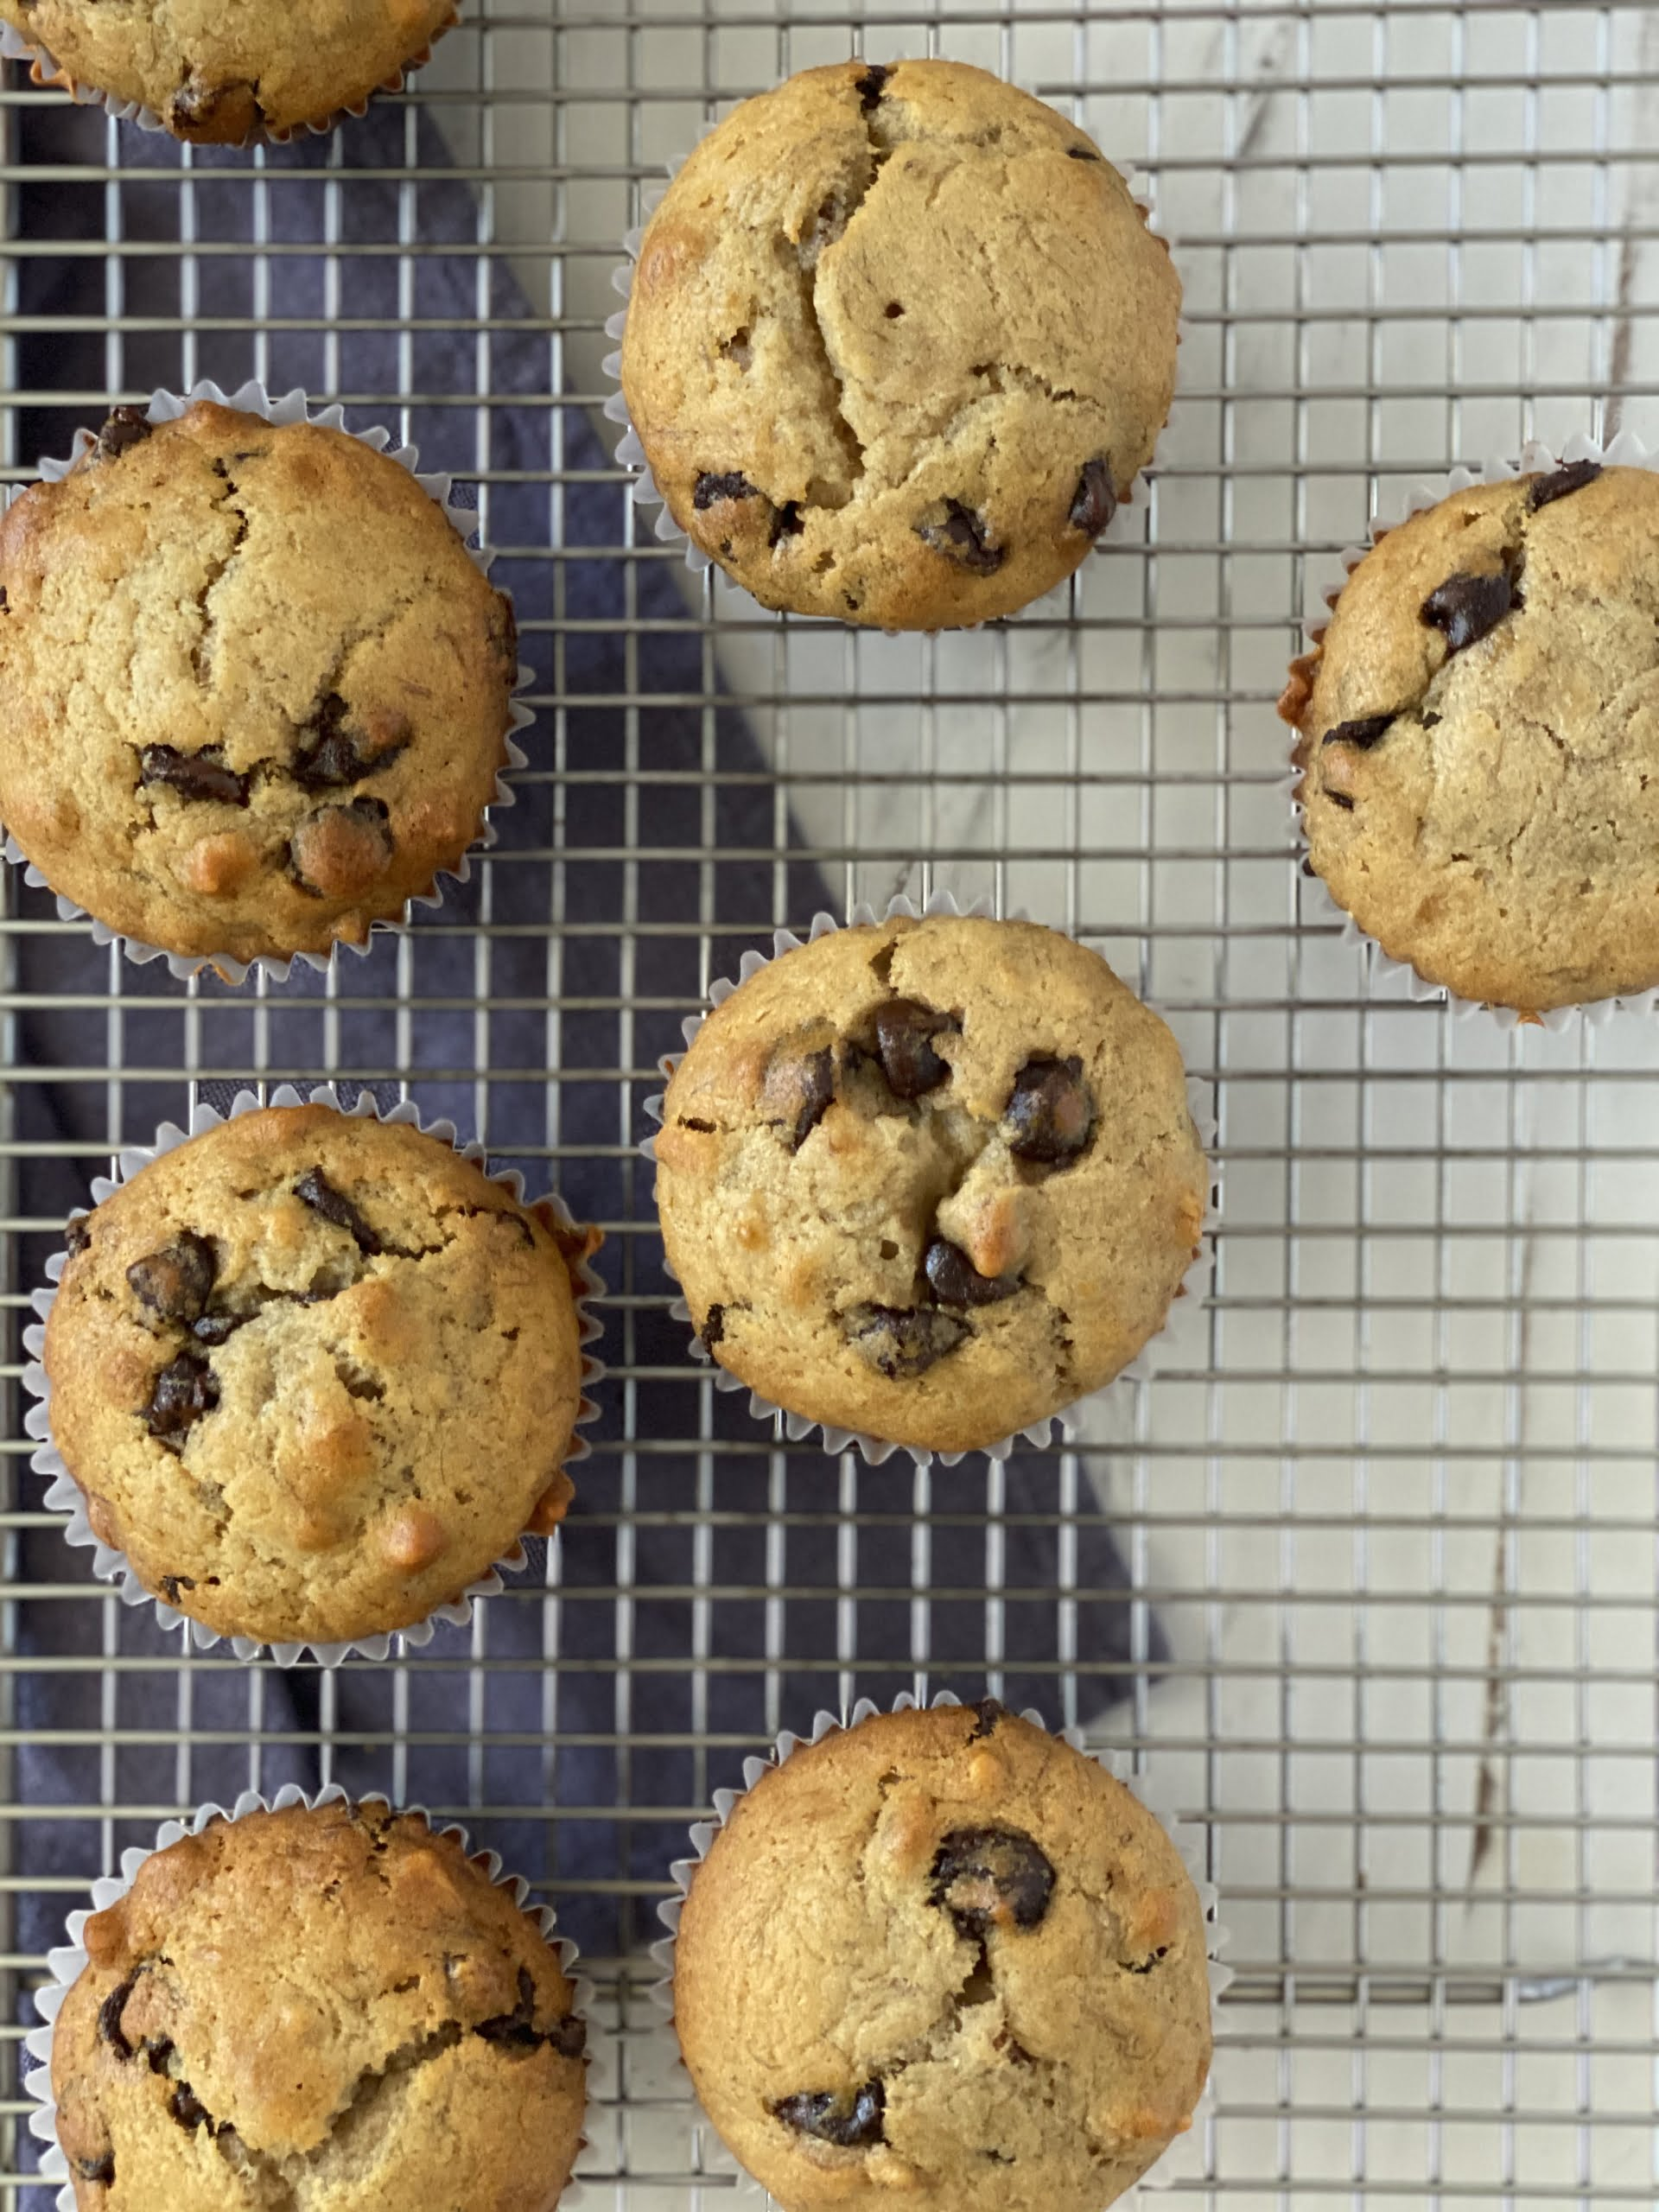 Vegan Friendly Chocolate Chip Banana Nut Muffins on a wire rack